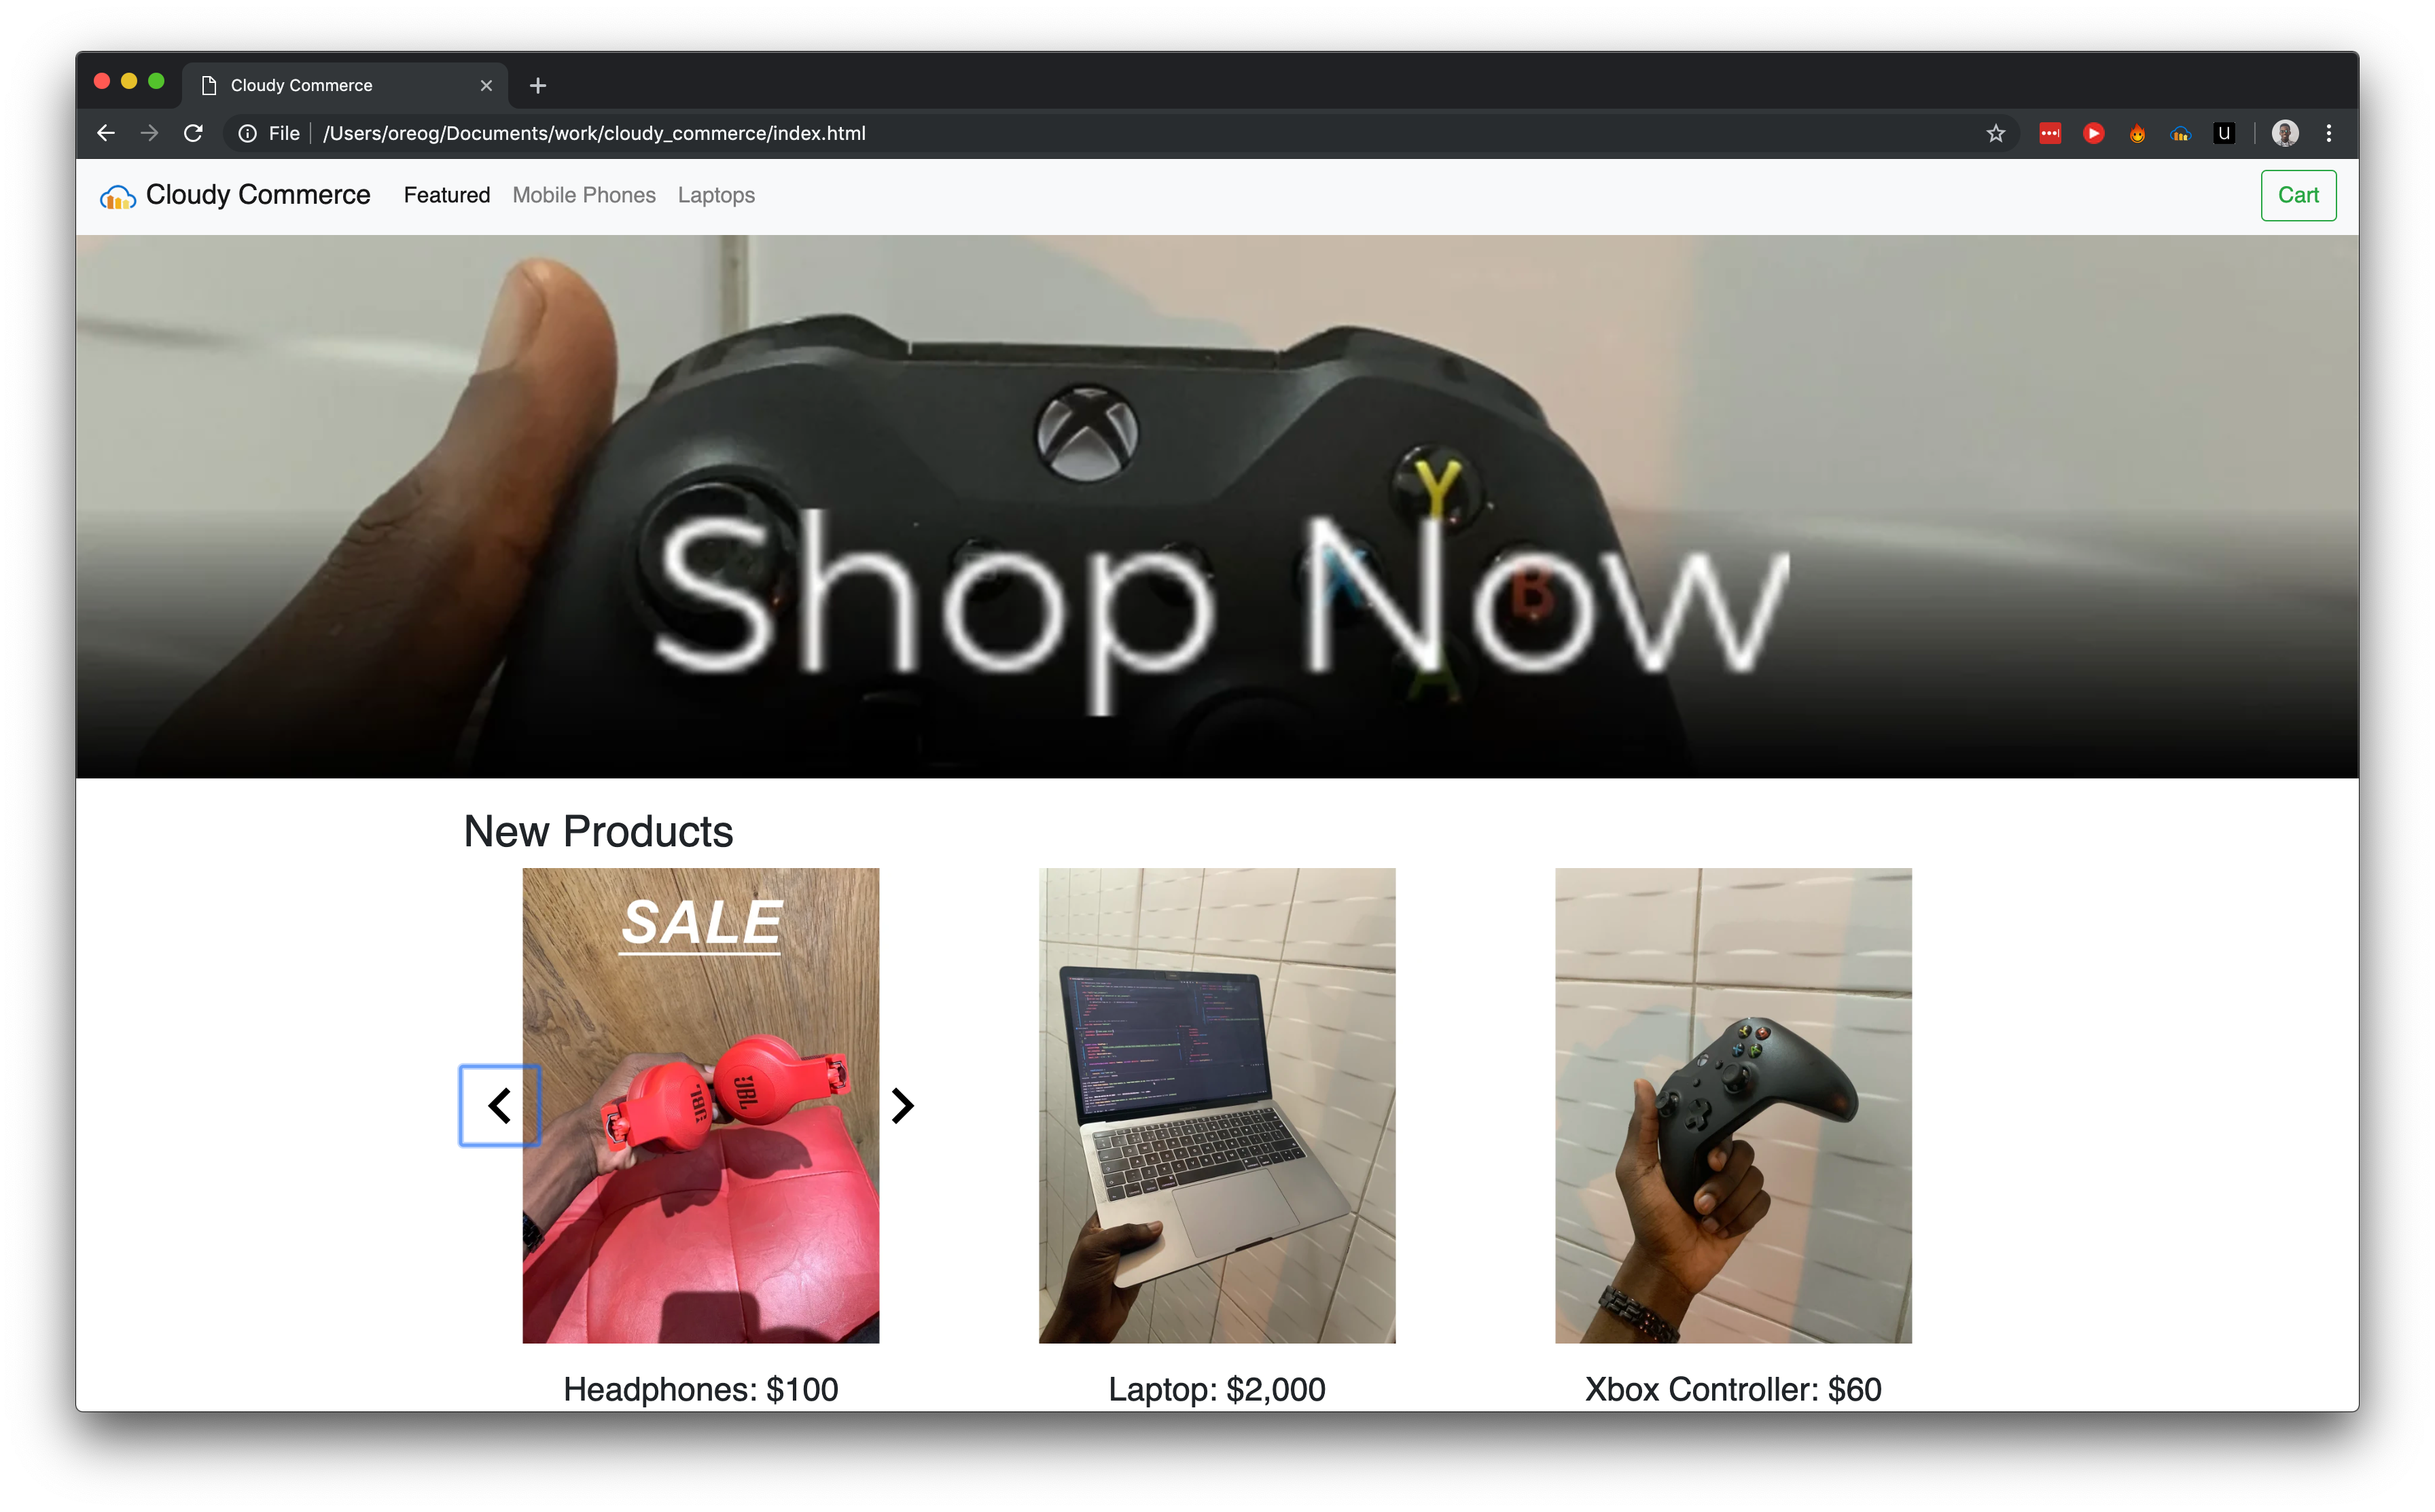 Quickly Build Product Galleries for eCommerce Sites ― Scotch io